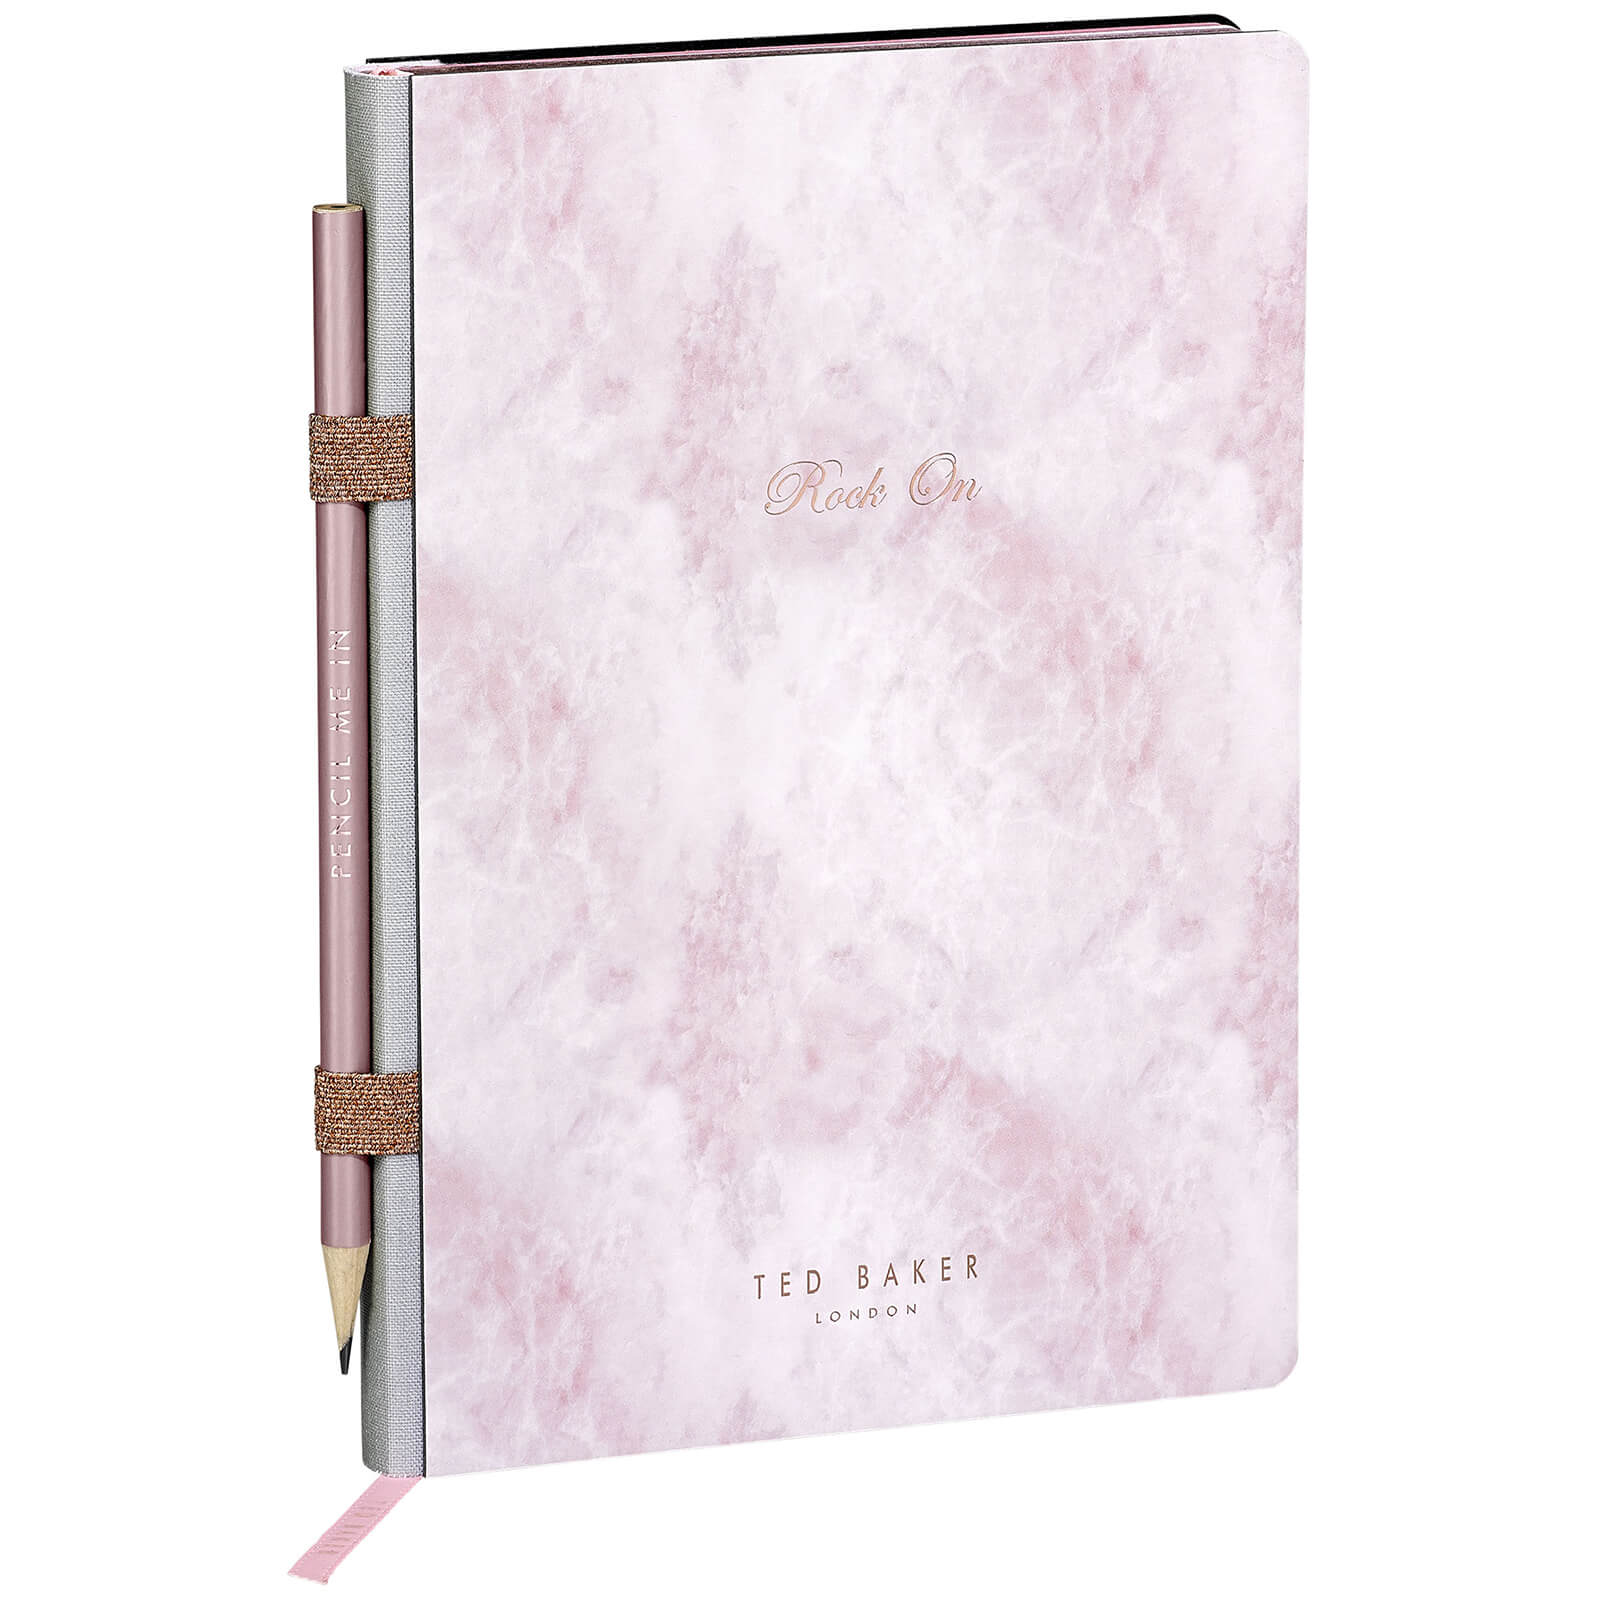 Ted Baker A5 Rose Quartz Notebook